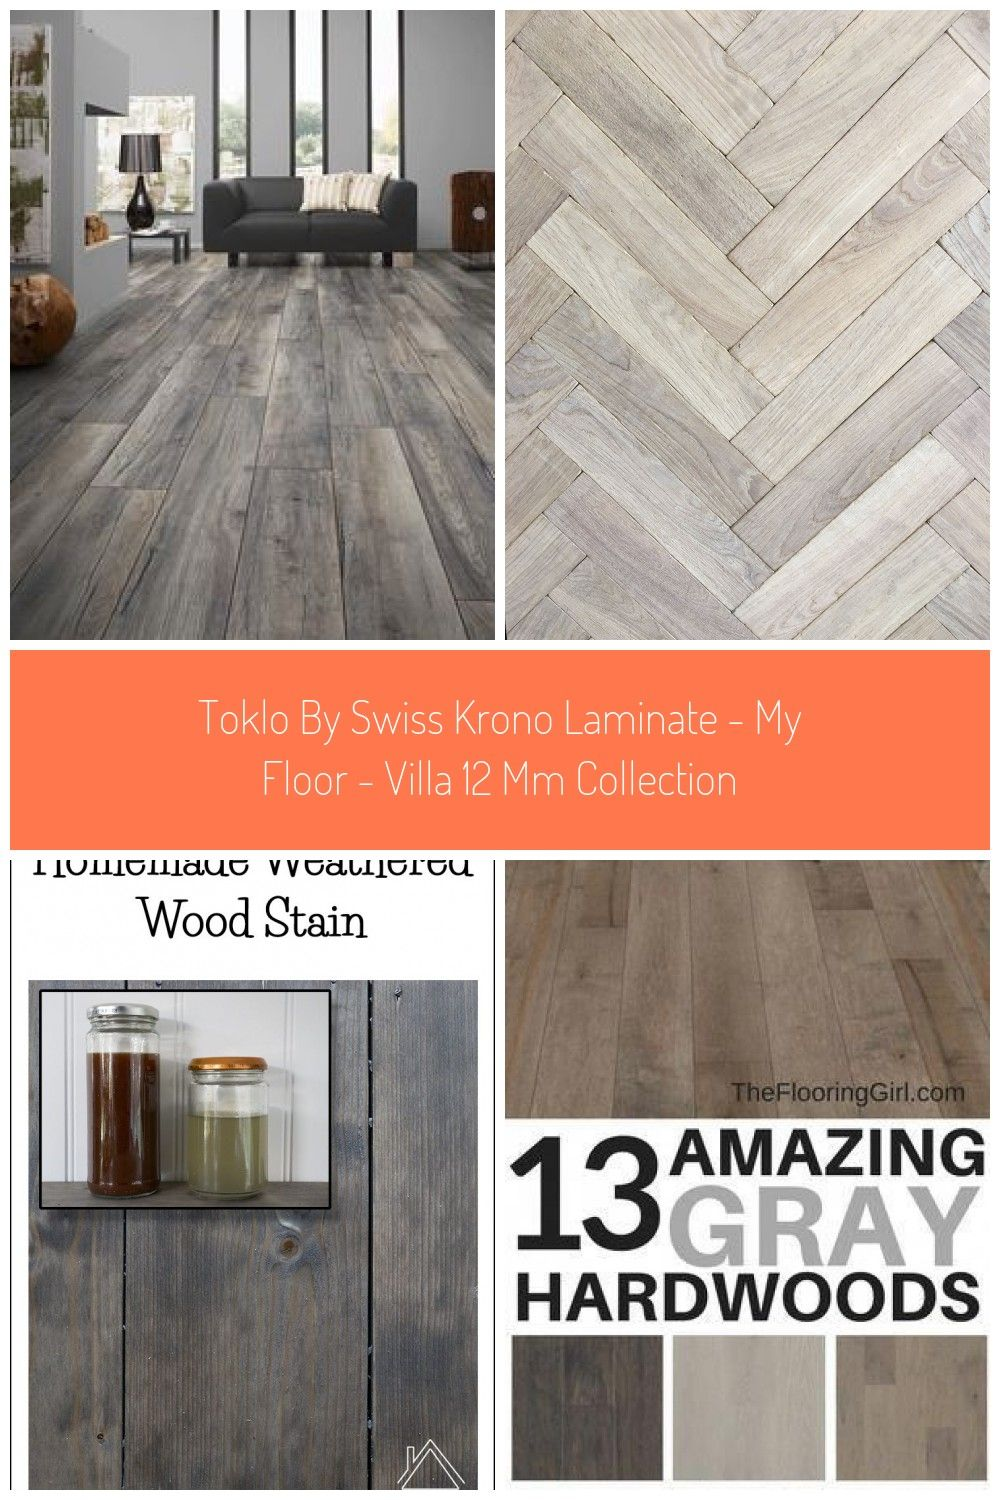 Toklo By Swiss Krono Laminate My Floor Villa 12 Mm Collection Grey Hardwood Floors Grey Stained Wood